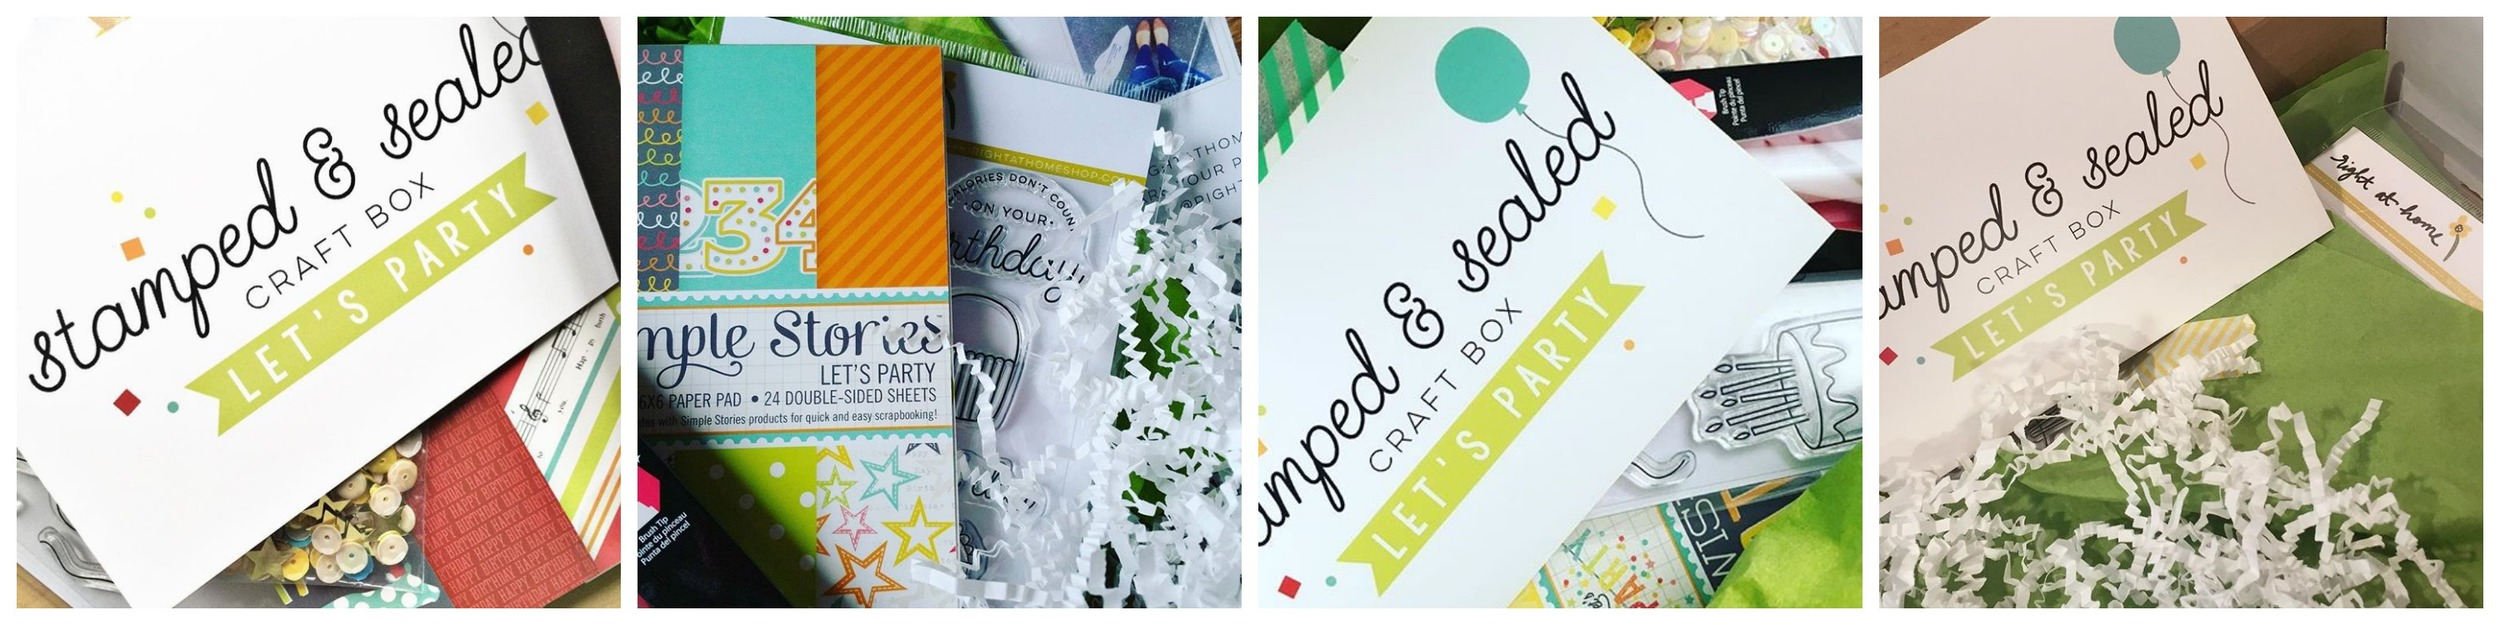 May Stamped & Sealed Craft Box Now Available // Let's Party - Design Team Sneak Peeks